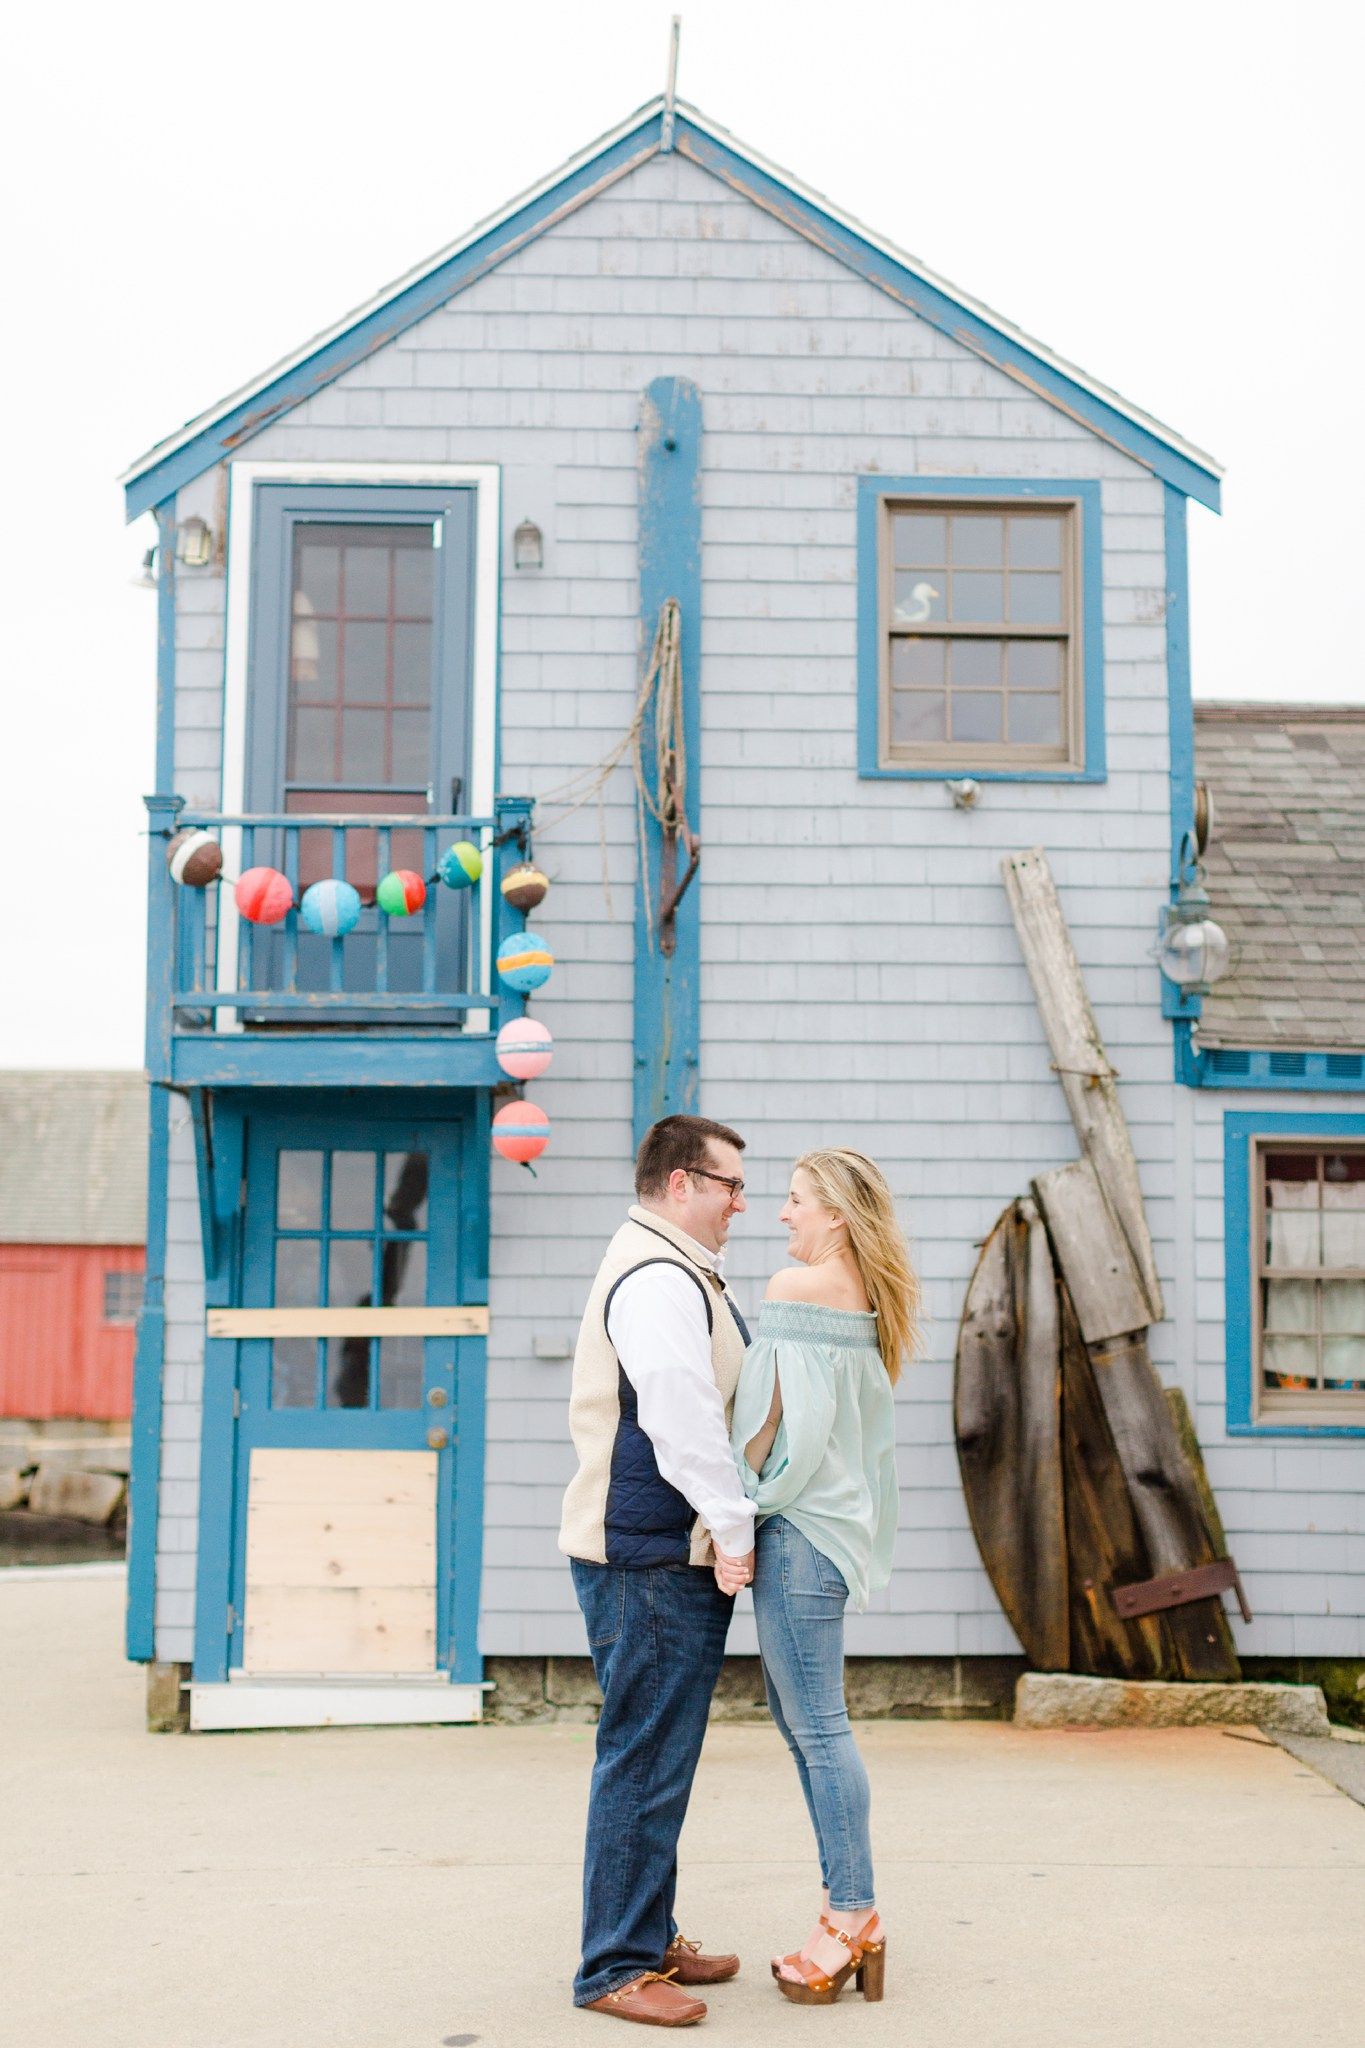 rockport_MA_engagement_session_Deborah_Zoe_Photography_00164.JPG